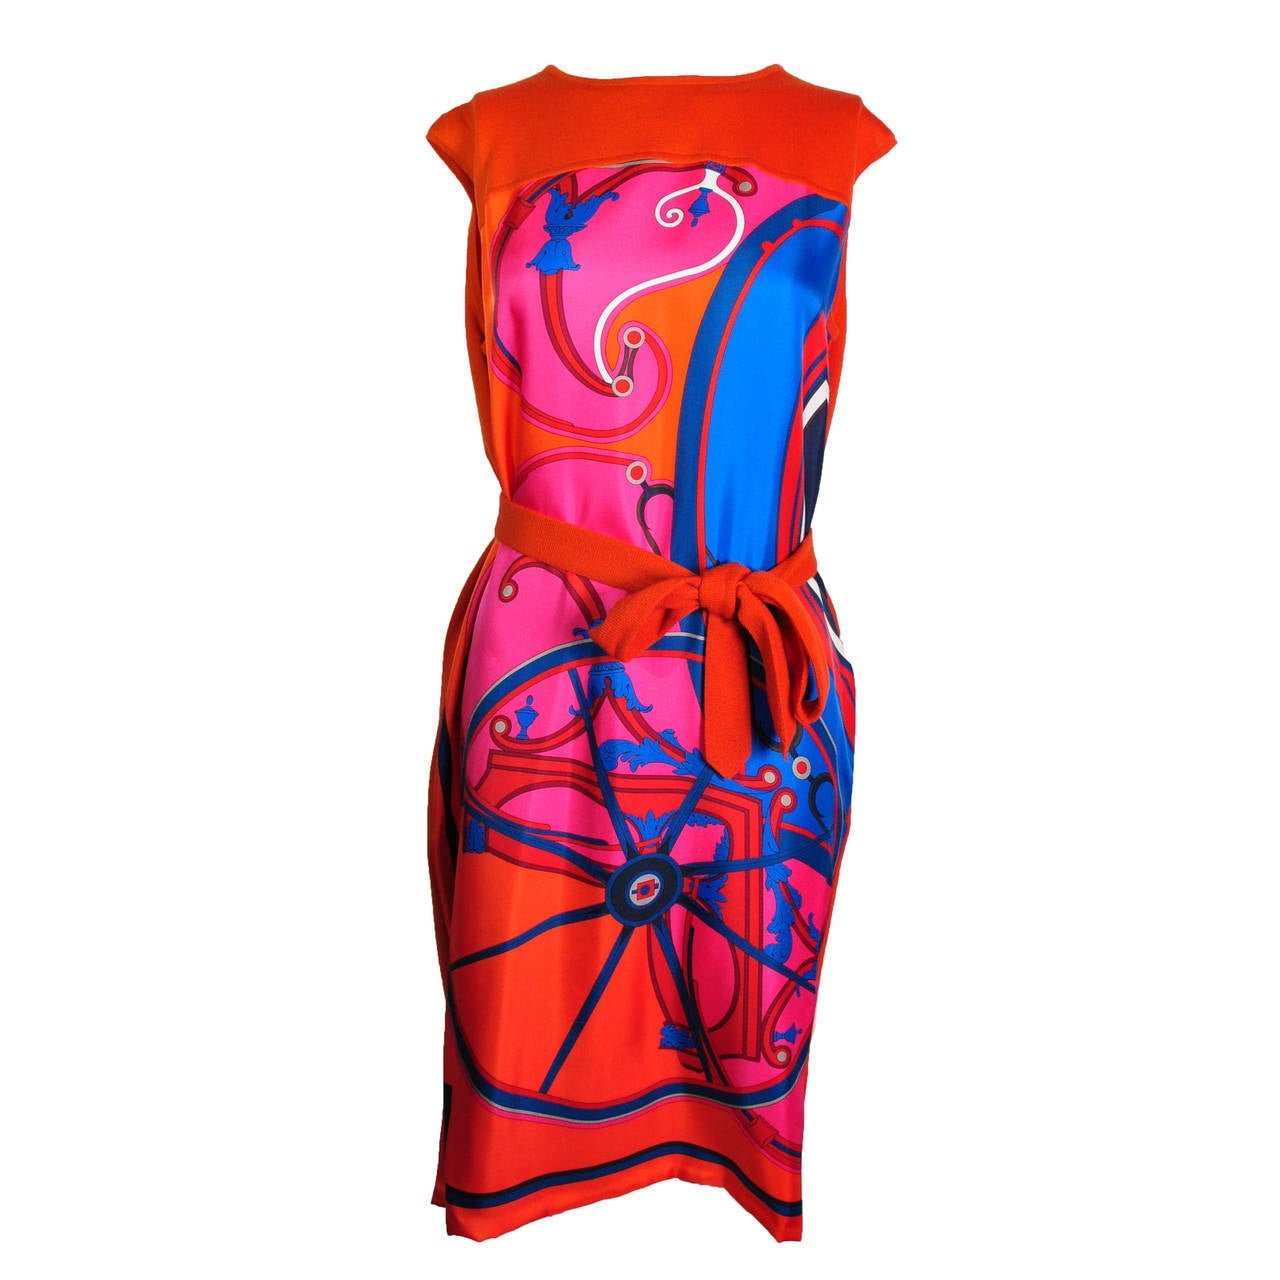 Hermes 2014 F/W Wool and Silk Scarf Print Knitted Dress New FR38 For Sale